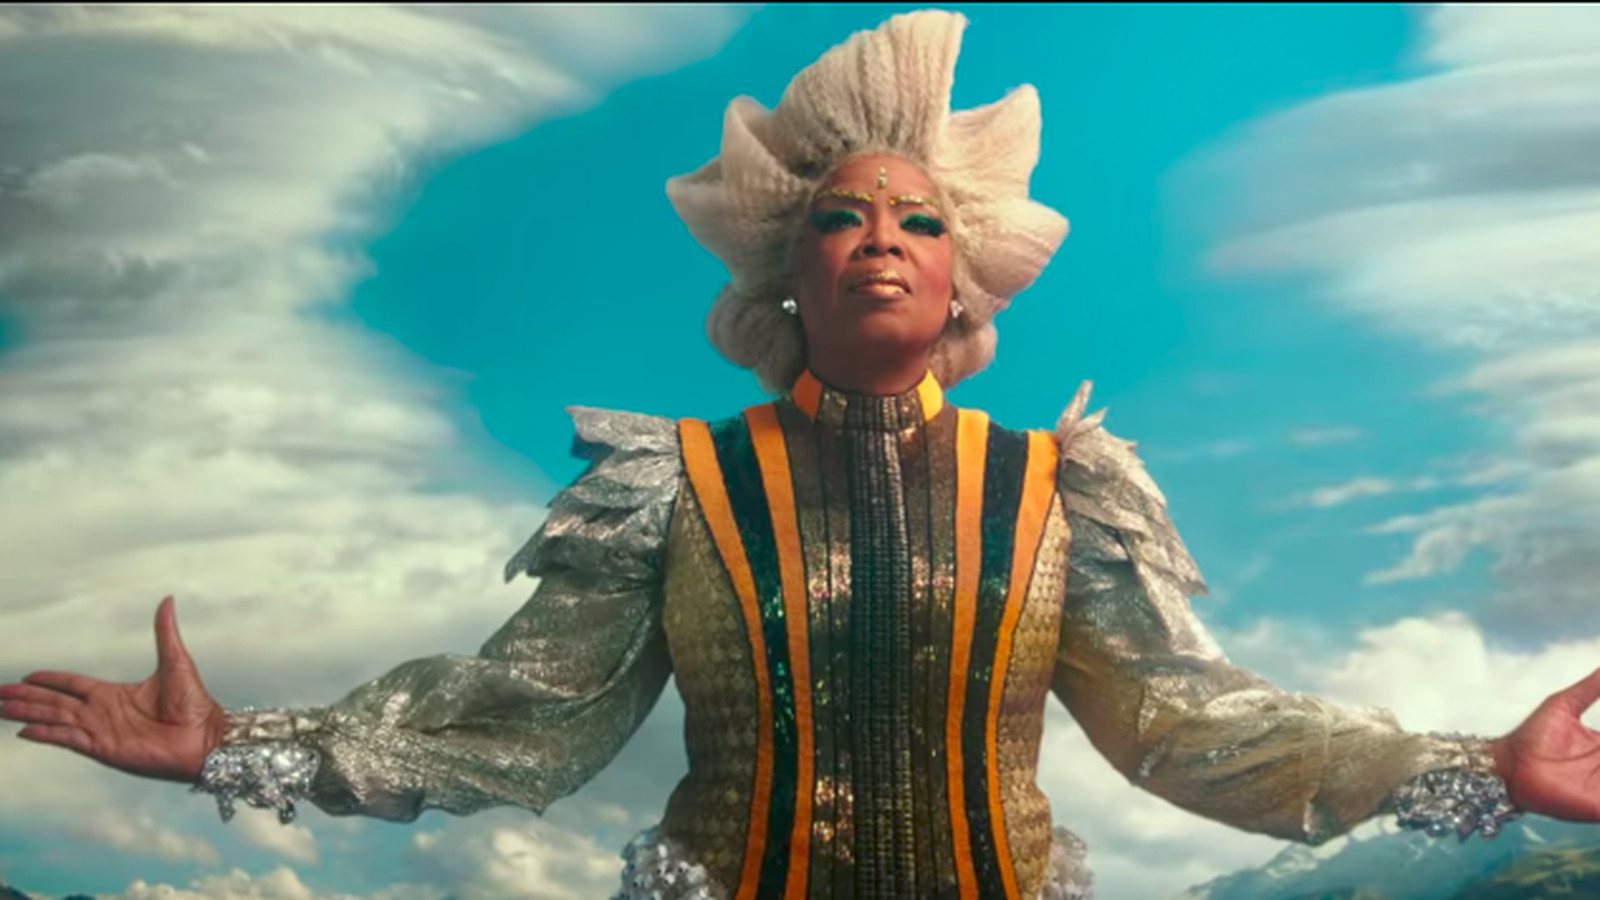 The best part of A Wrinkle in Time's first trailer is Oprah's brilliant, celestial costumes